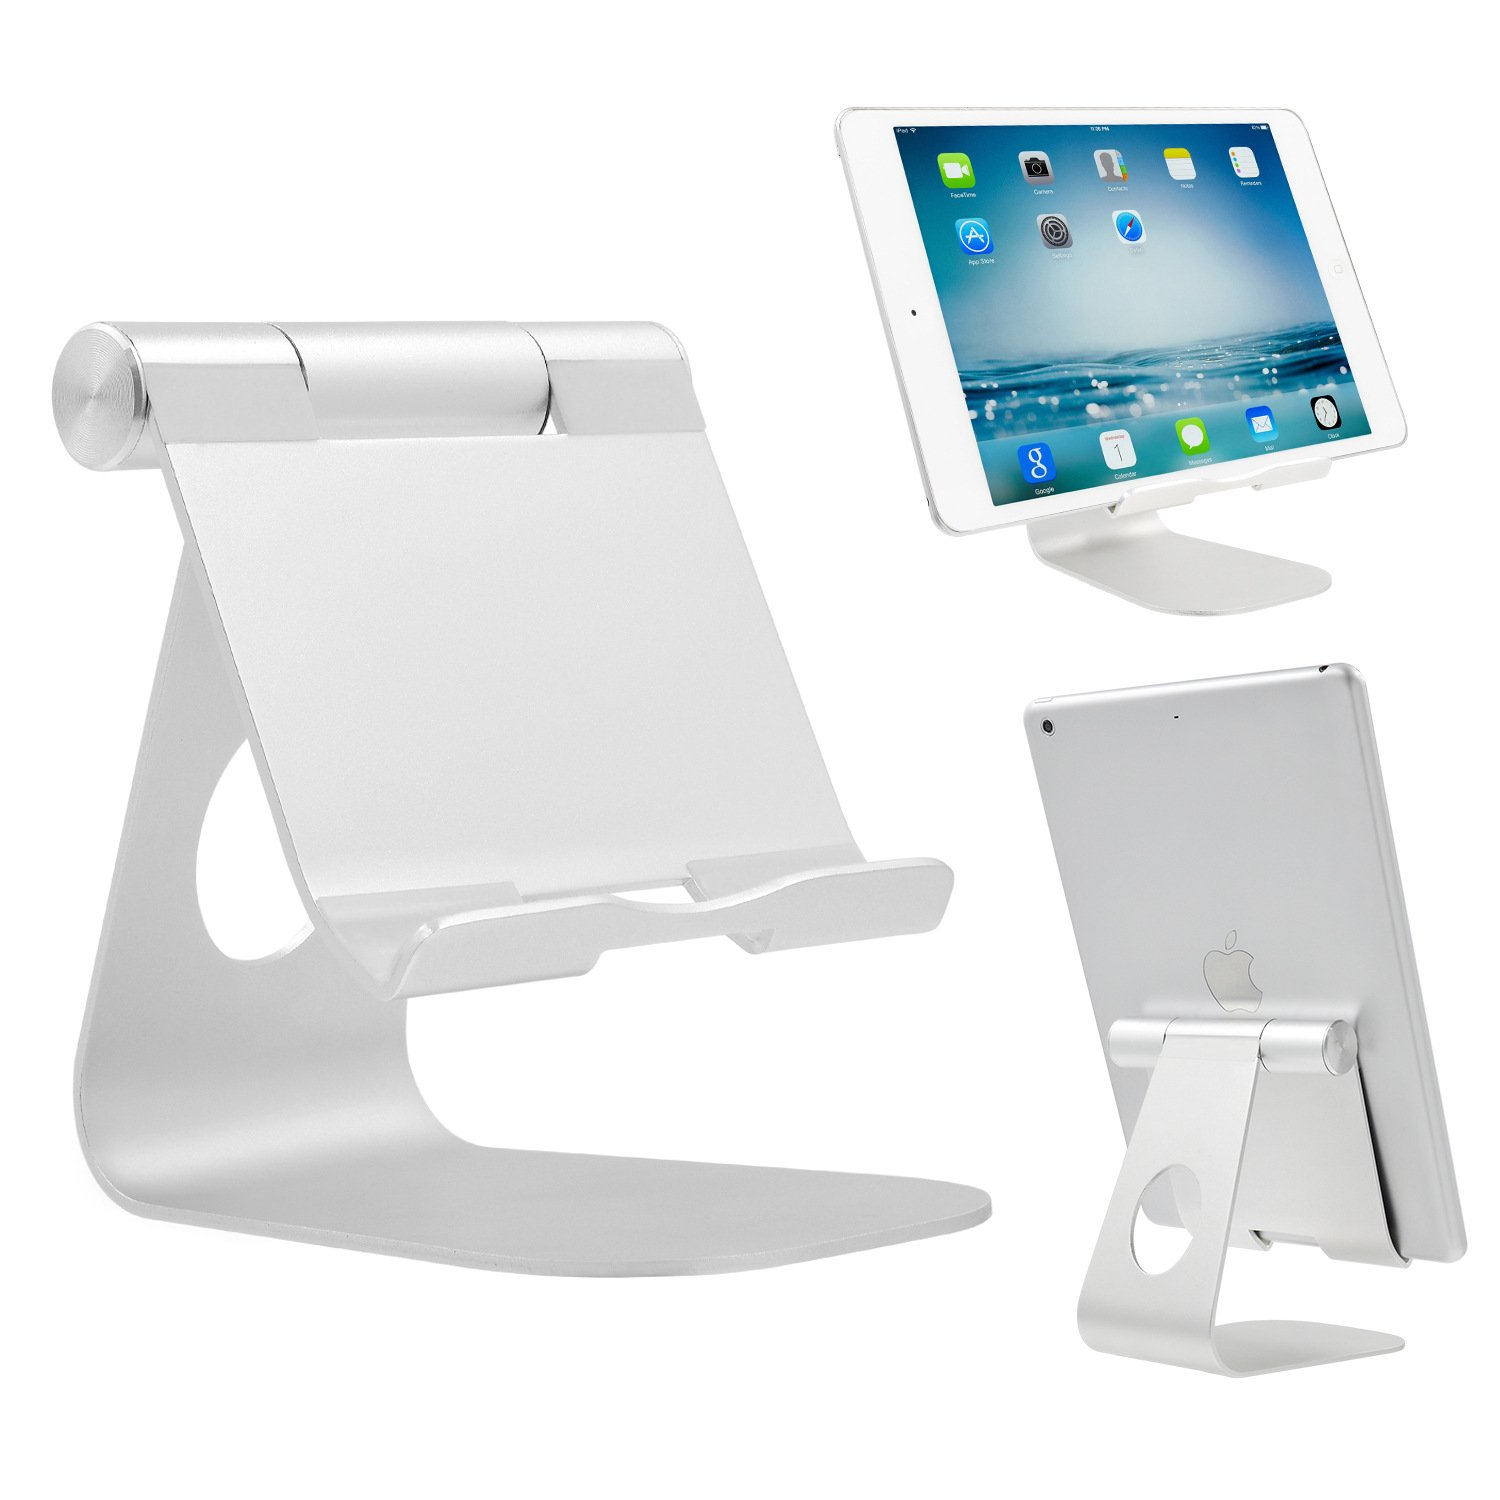 iPad Stand Adjustable Aluminum Tablet Stand, Desktop Stand Holder Dock for iPad Pro 9.7, 10.5, 12.9, Air 2 3 4 mini, Kindle, Nexus, Accessories, Tab, E-reader Other Android Tablets (4-13 inch) Silver by Portefeuille